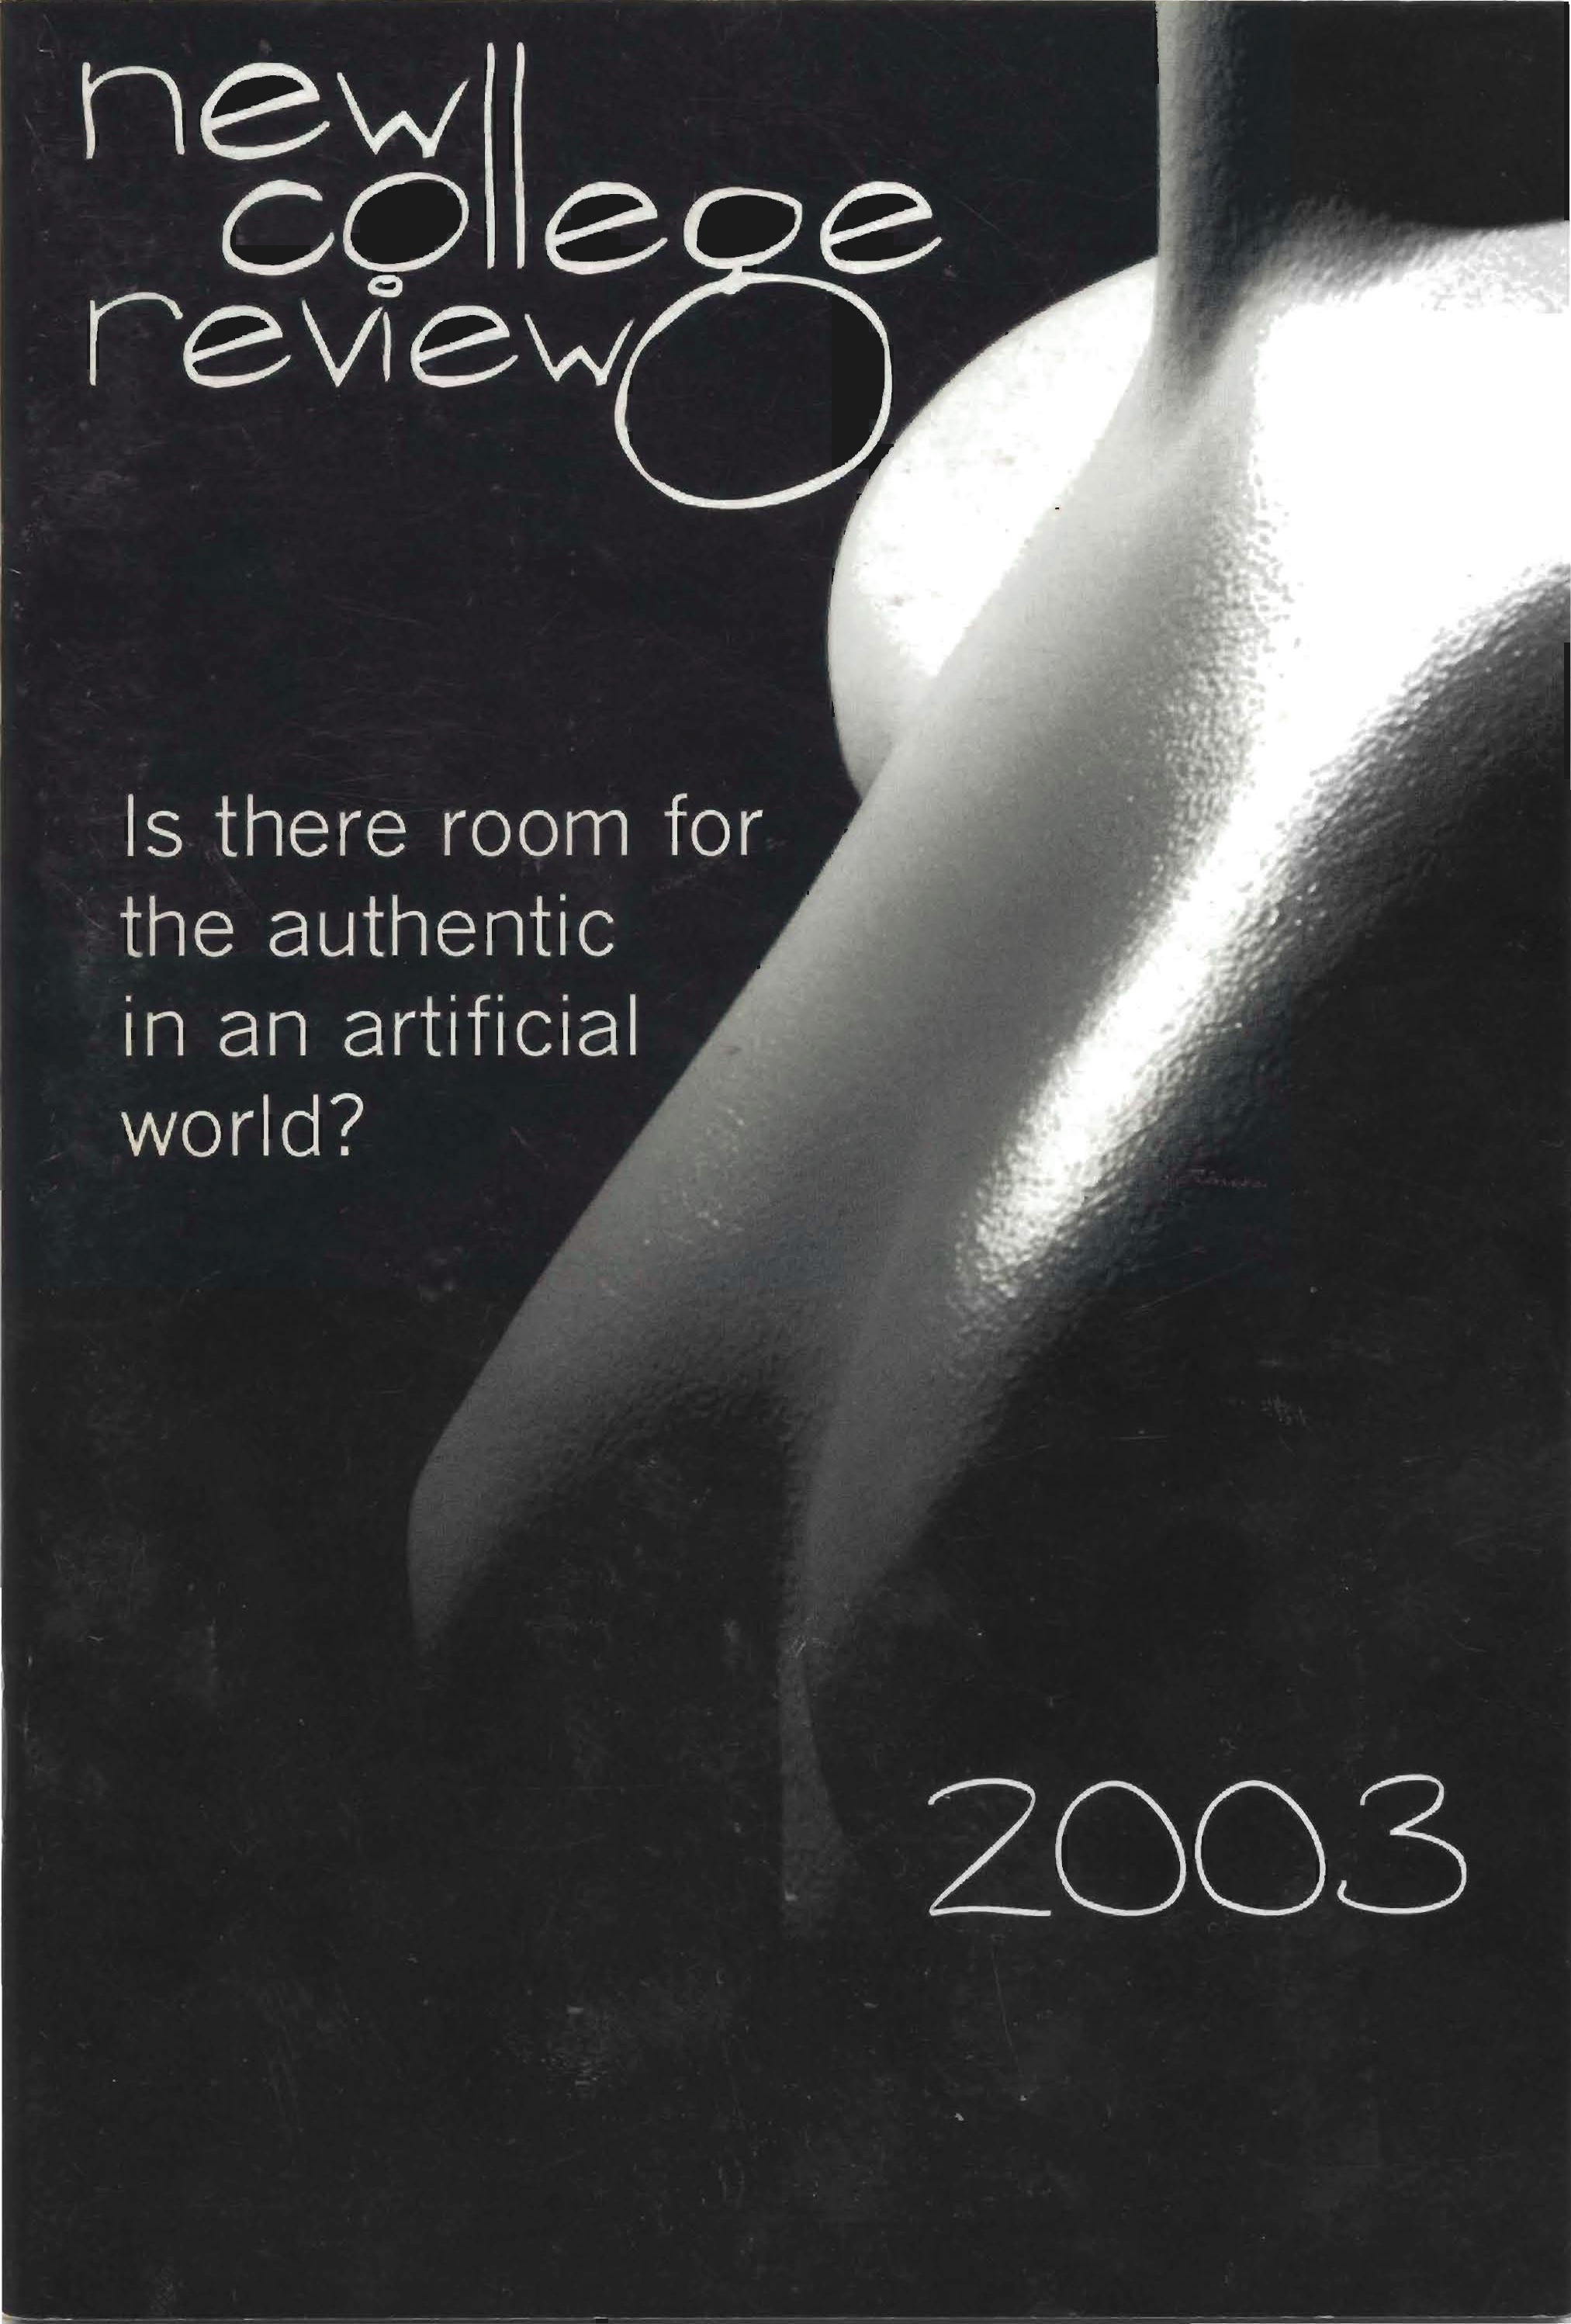 Cover of The New College Review, 2003 issue with the words,